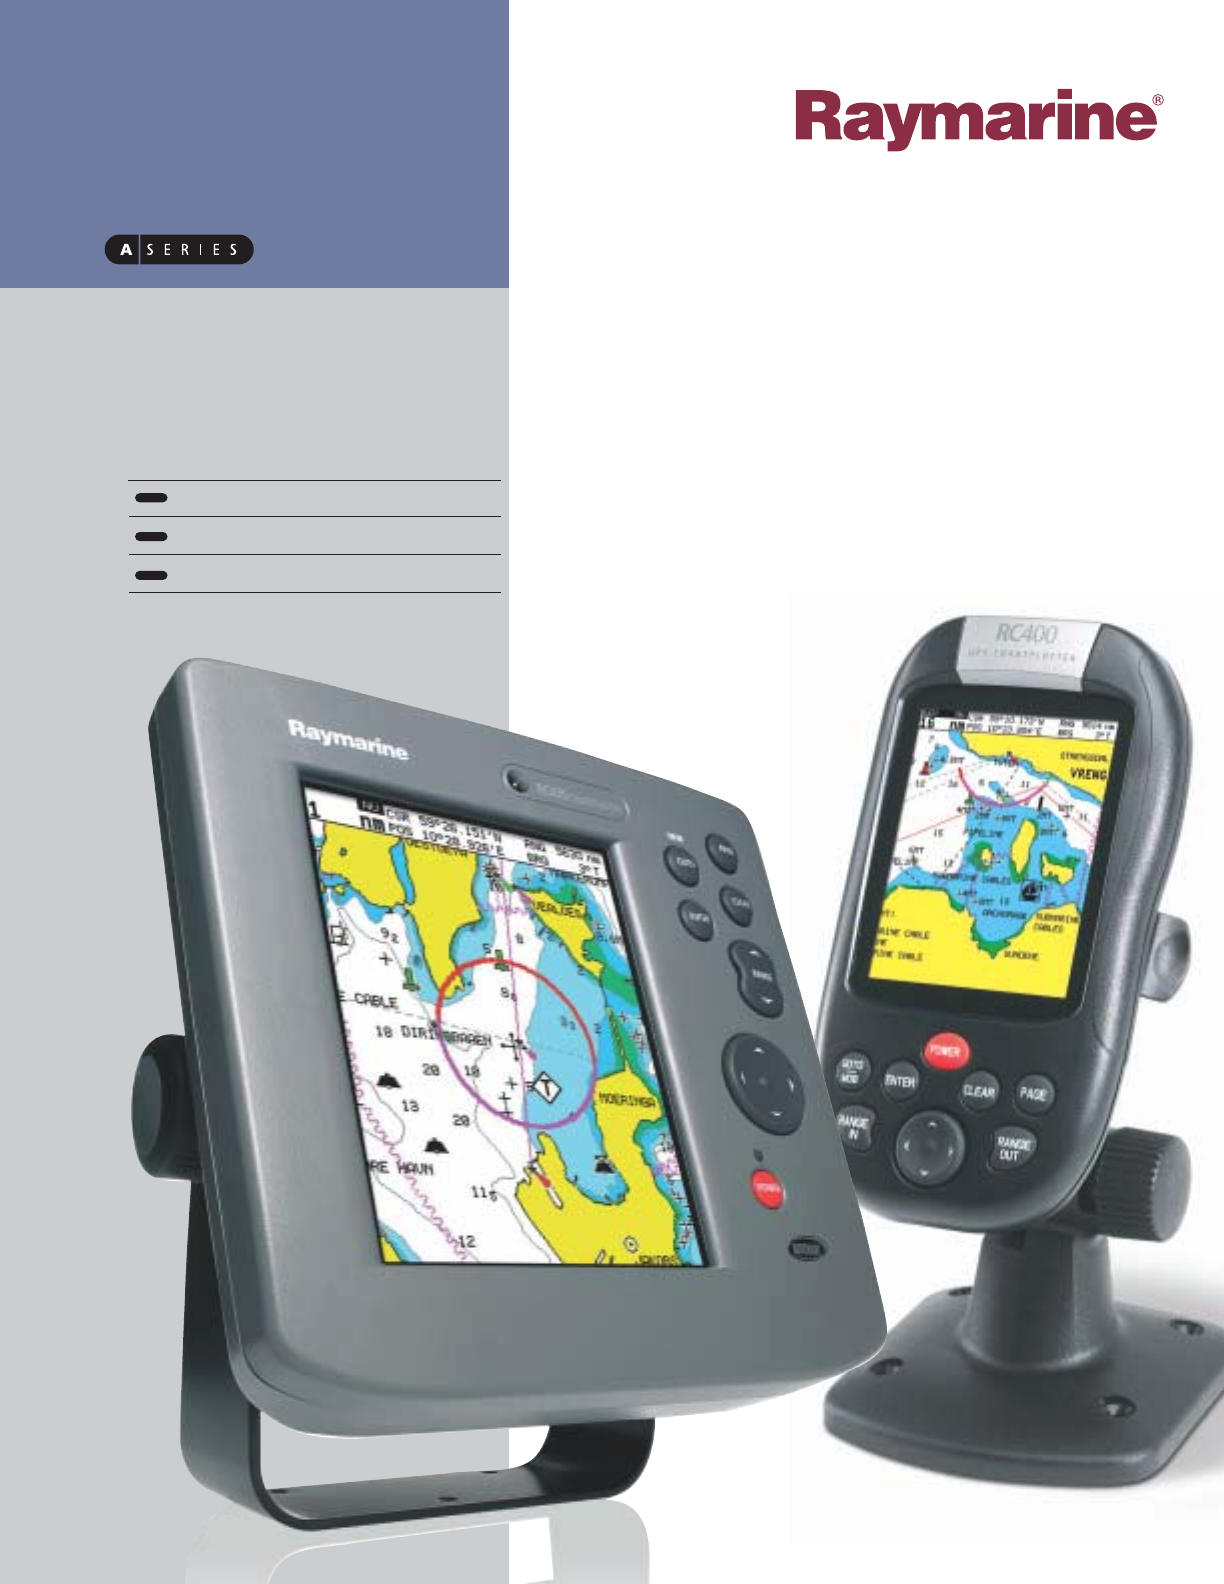 raymarine marine gps system rc435i user guide manualsonline com rh marine manualsonline com raymarine axiom user guide raymarine a70d user guide